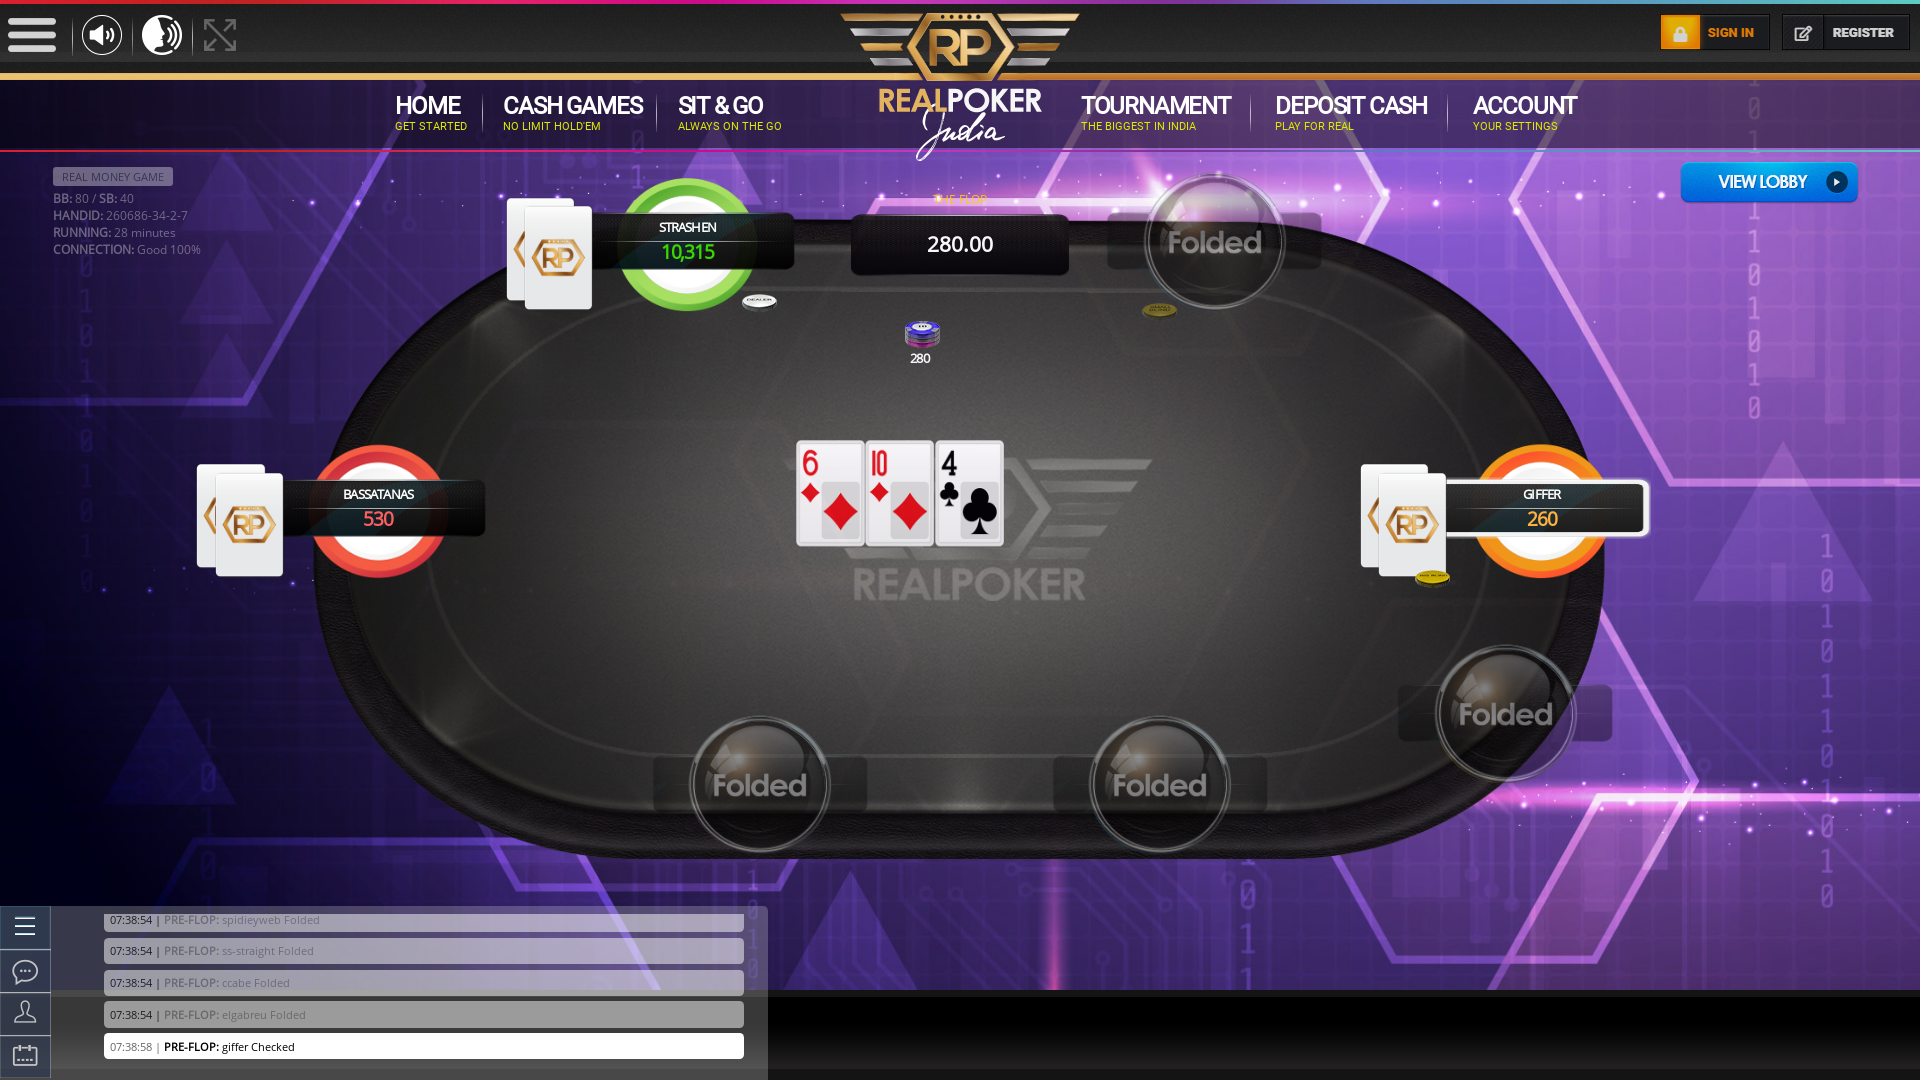 Real Indian poker on a 10 player table in the 27th minute of the game